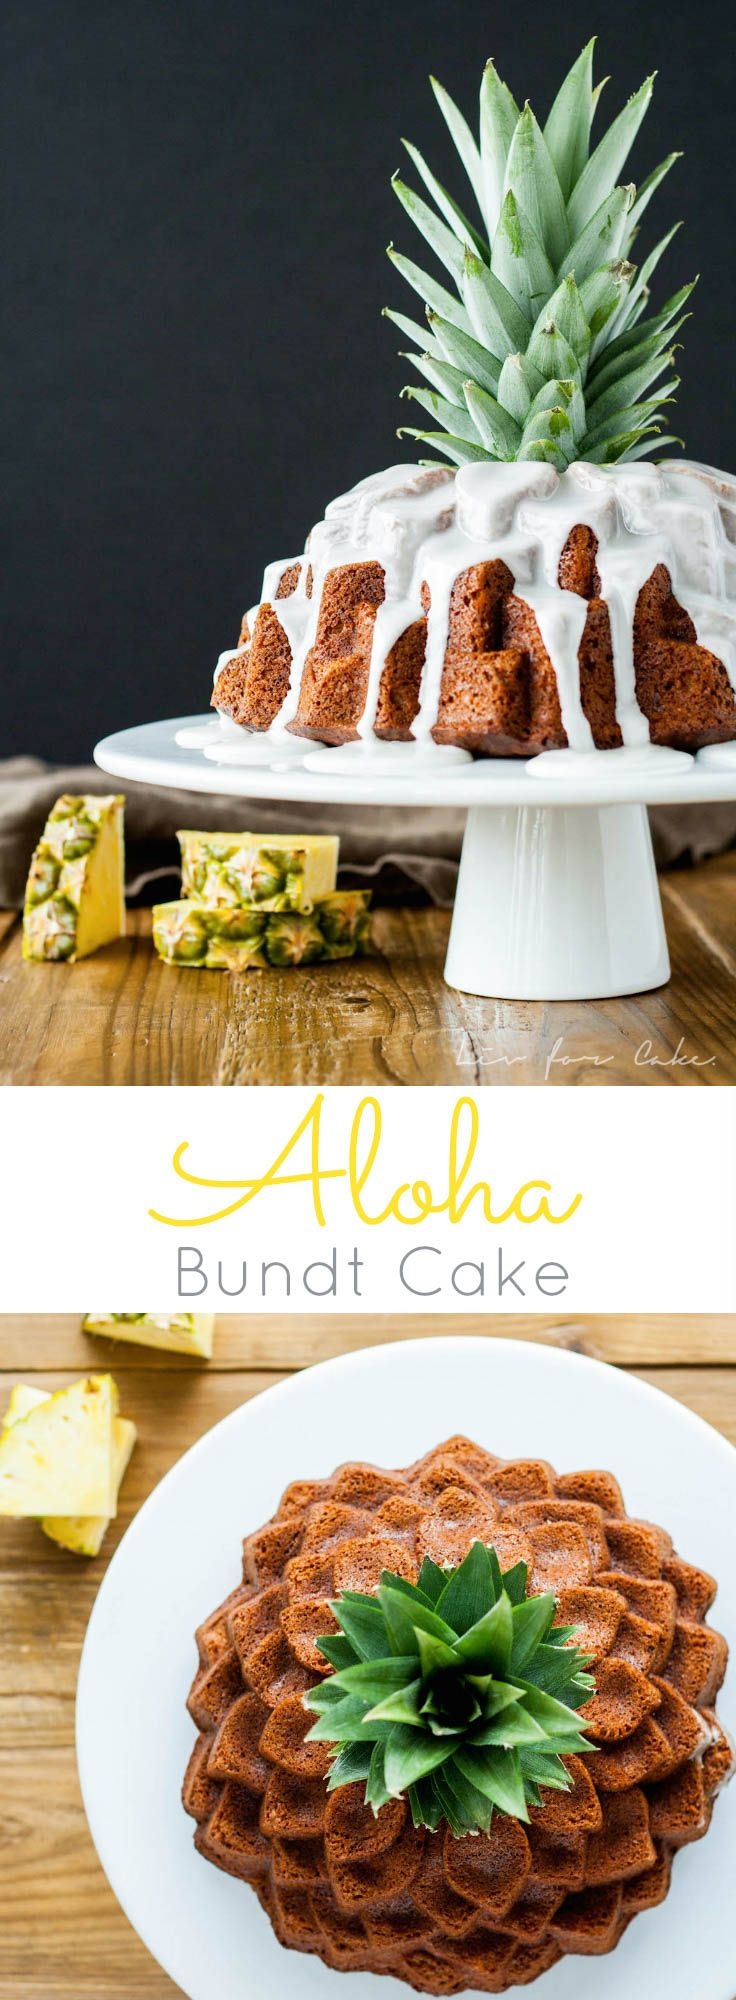 This Aloha Bundt cake is loaded with the very best Hawaii has to offer - bananas, pineapple, coconut, and macadamia nuts! | livforcake.com